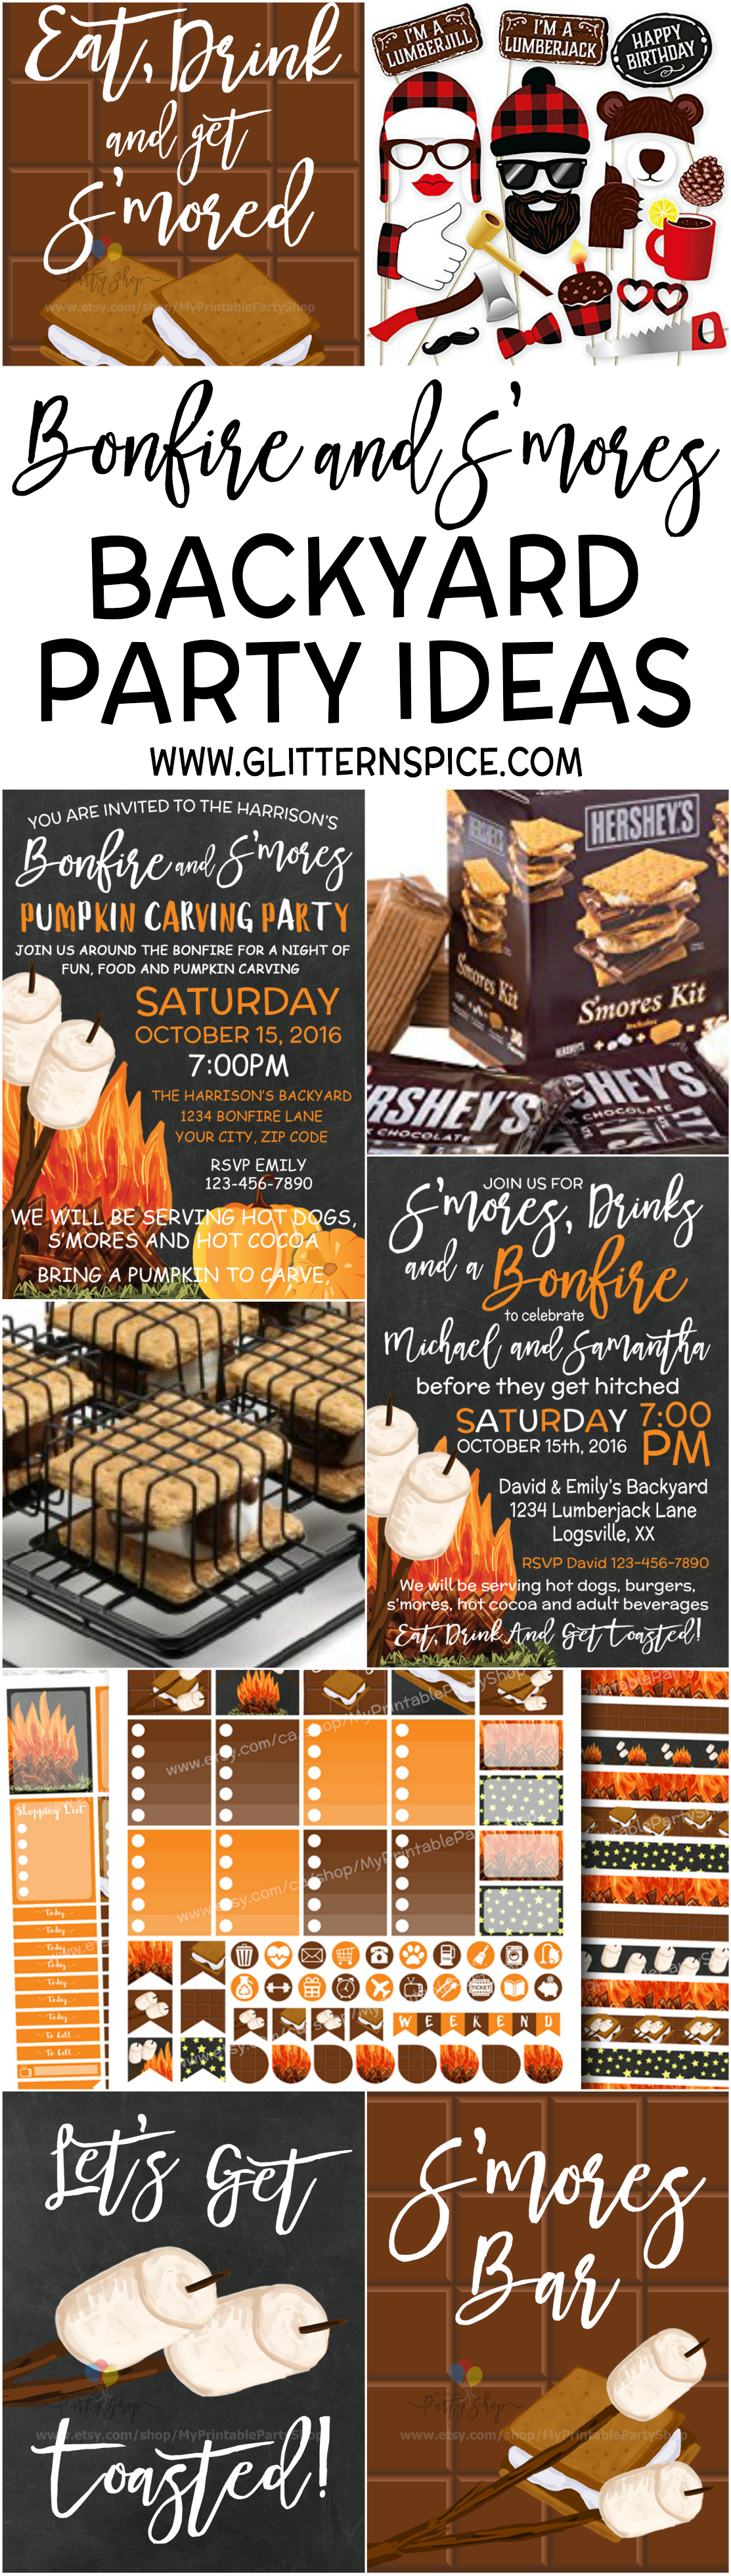 Fall Birthday Smores And Bonfire Backyard Party Ideas